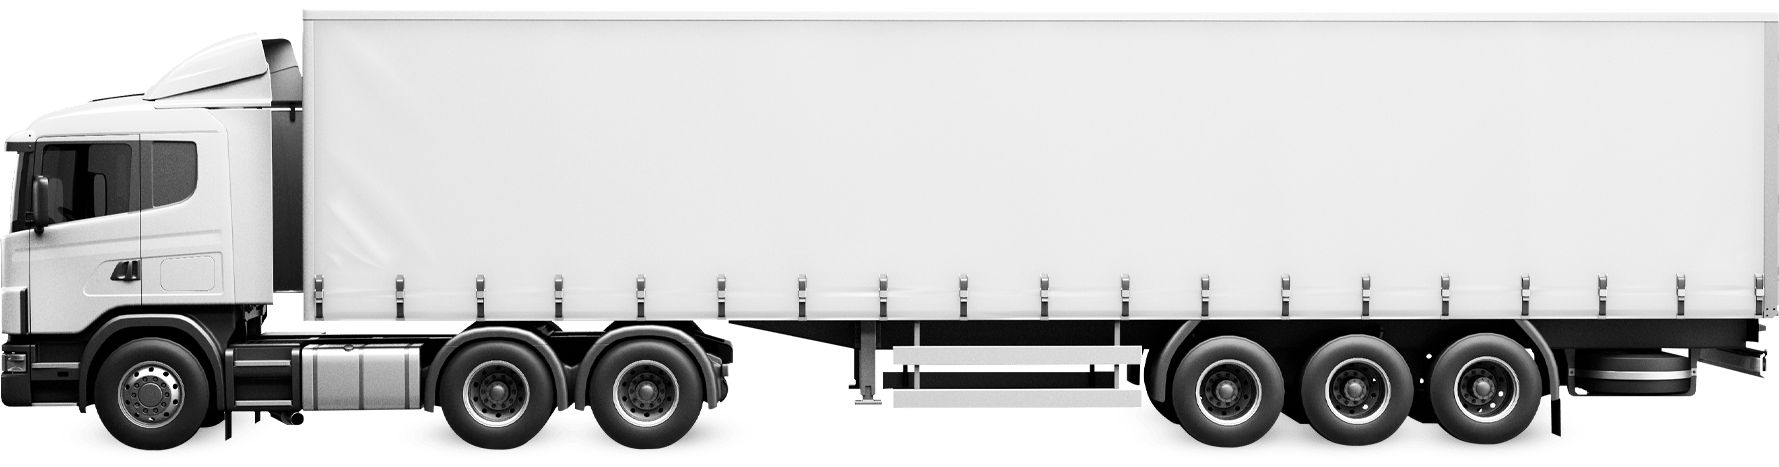 vehicle-camera-systems-side-hgv